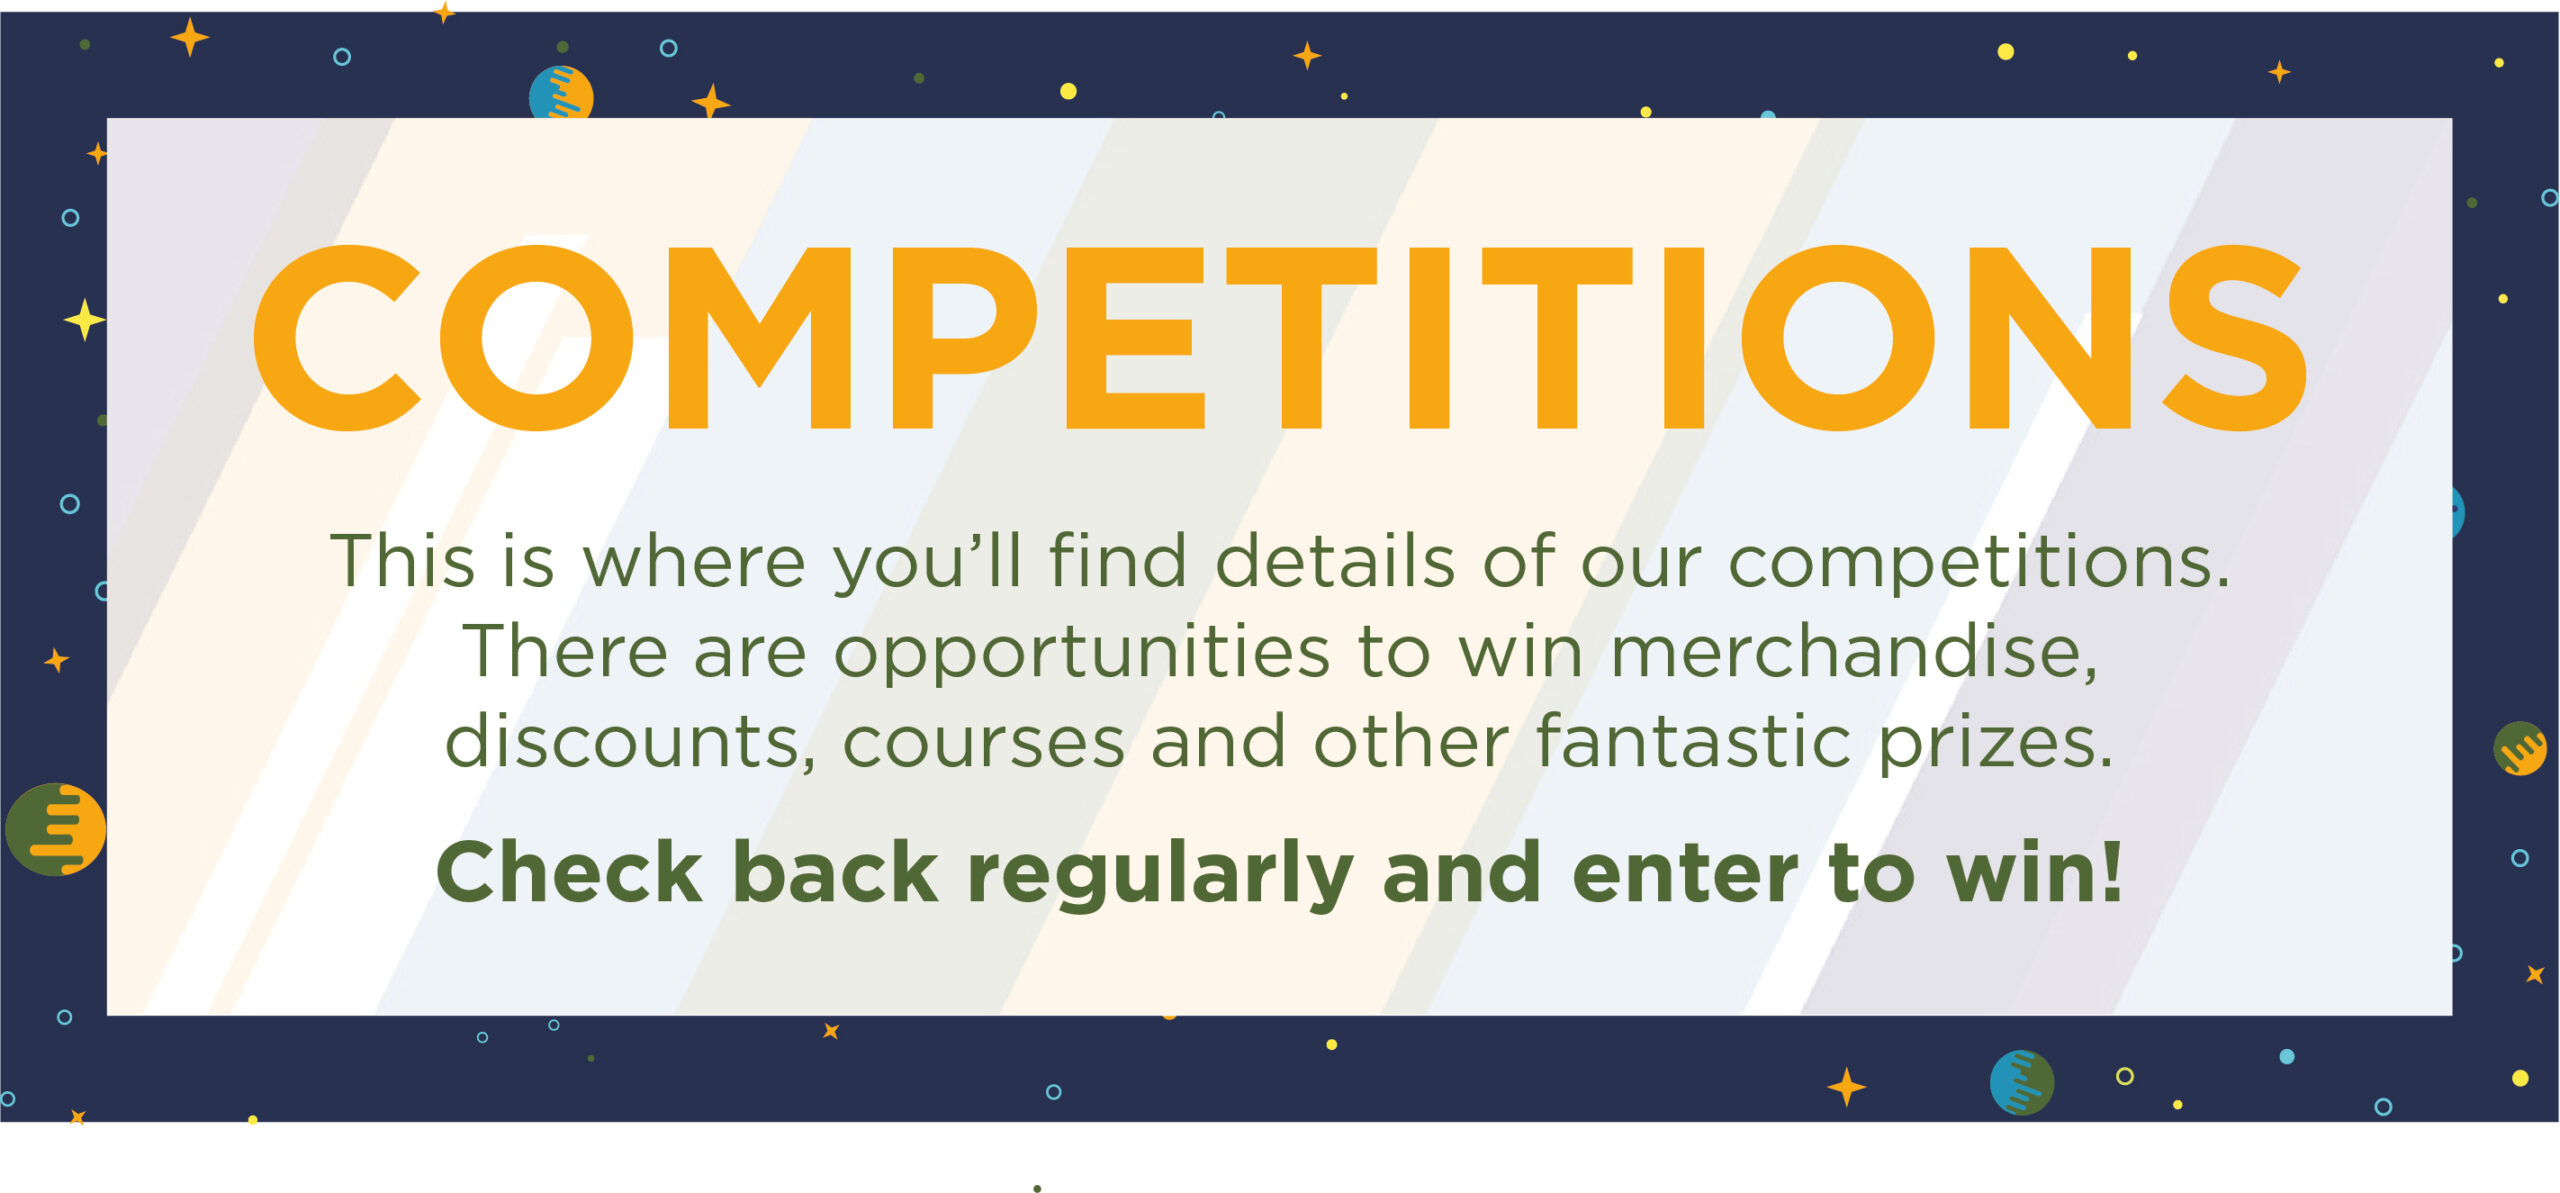 Competitions This is where you'll find details of our competitions. There are opportunities to win merchandise, discounts, courses and other fantastic prizes. Check back regularly and enter to win!